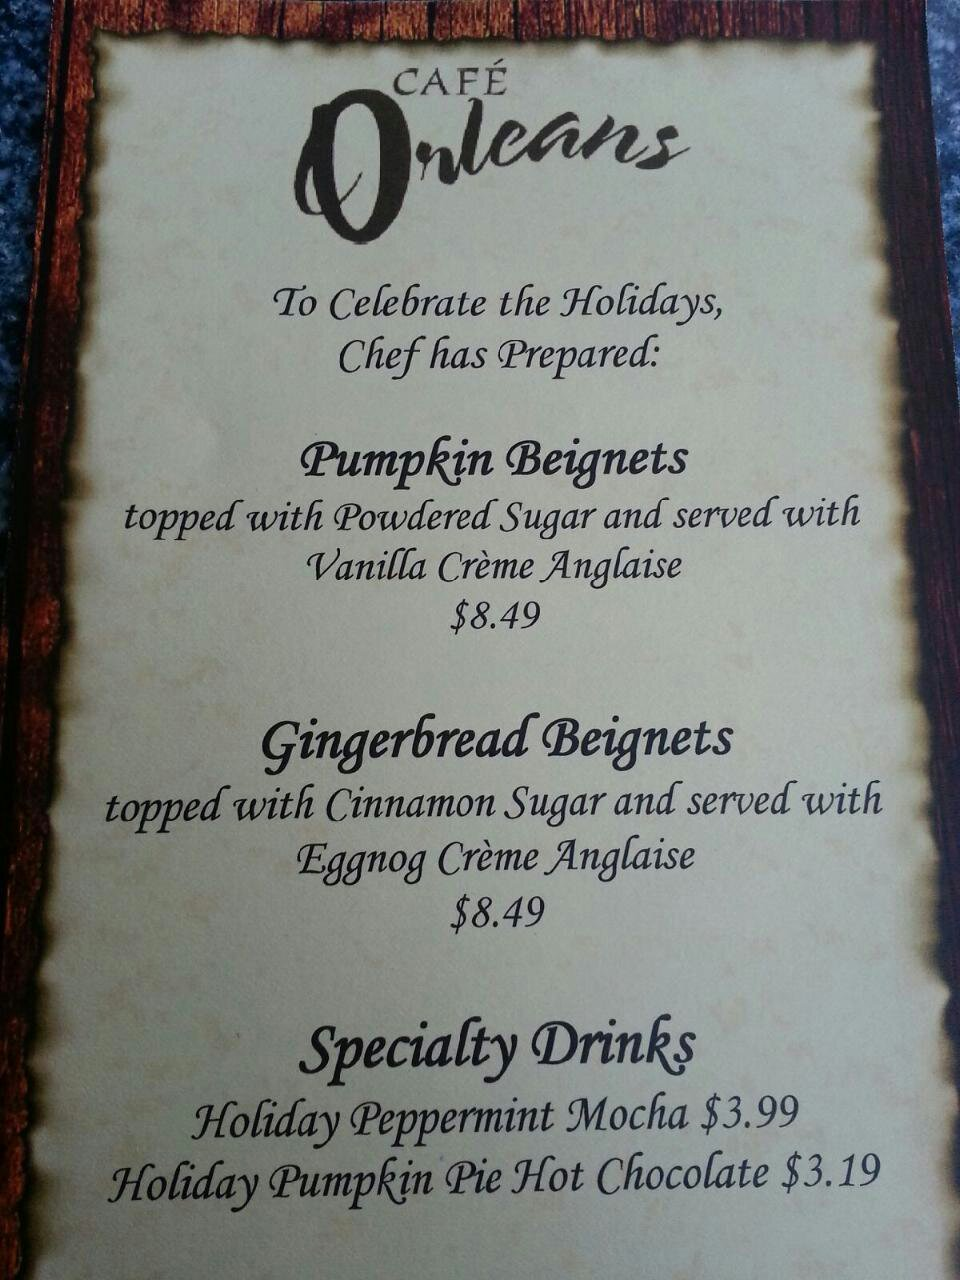 Cafe Orleans Holiday menu #DisneyHolidays – Thanks to a friend for the picture